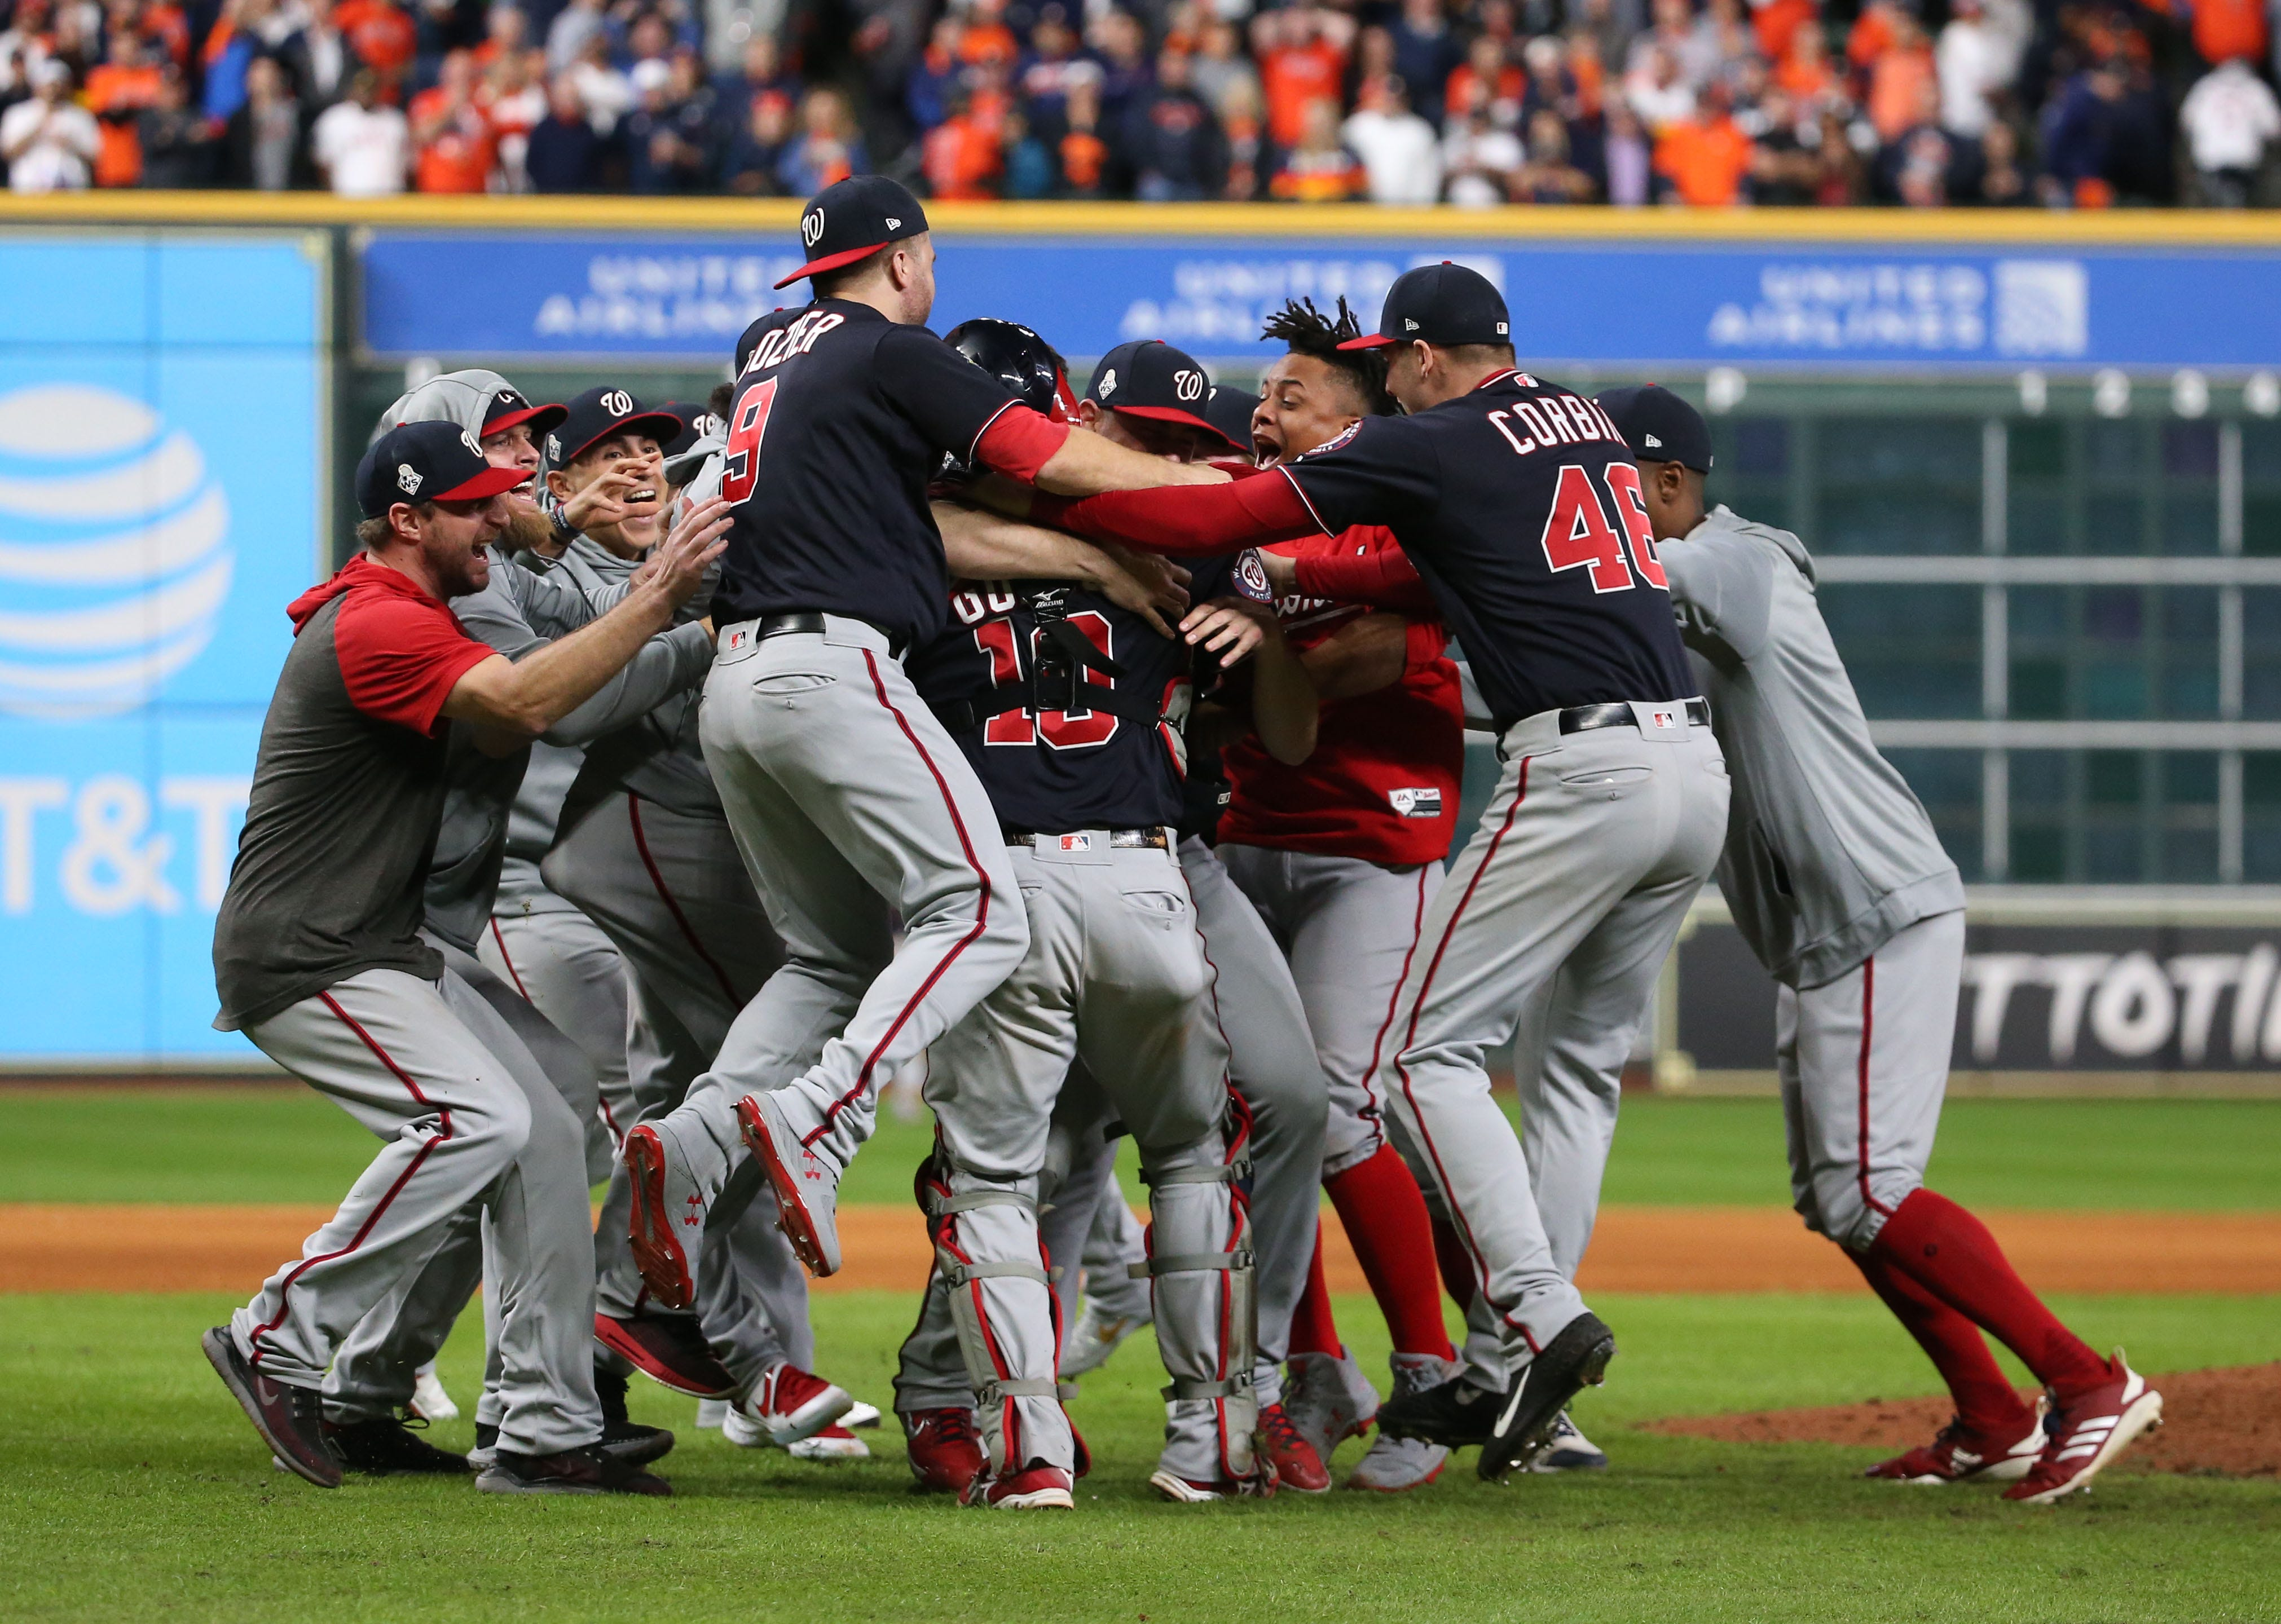 After boos in Game 5, President Donald Trump tweets about Nationals' World Series victory